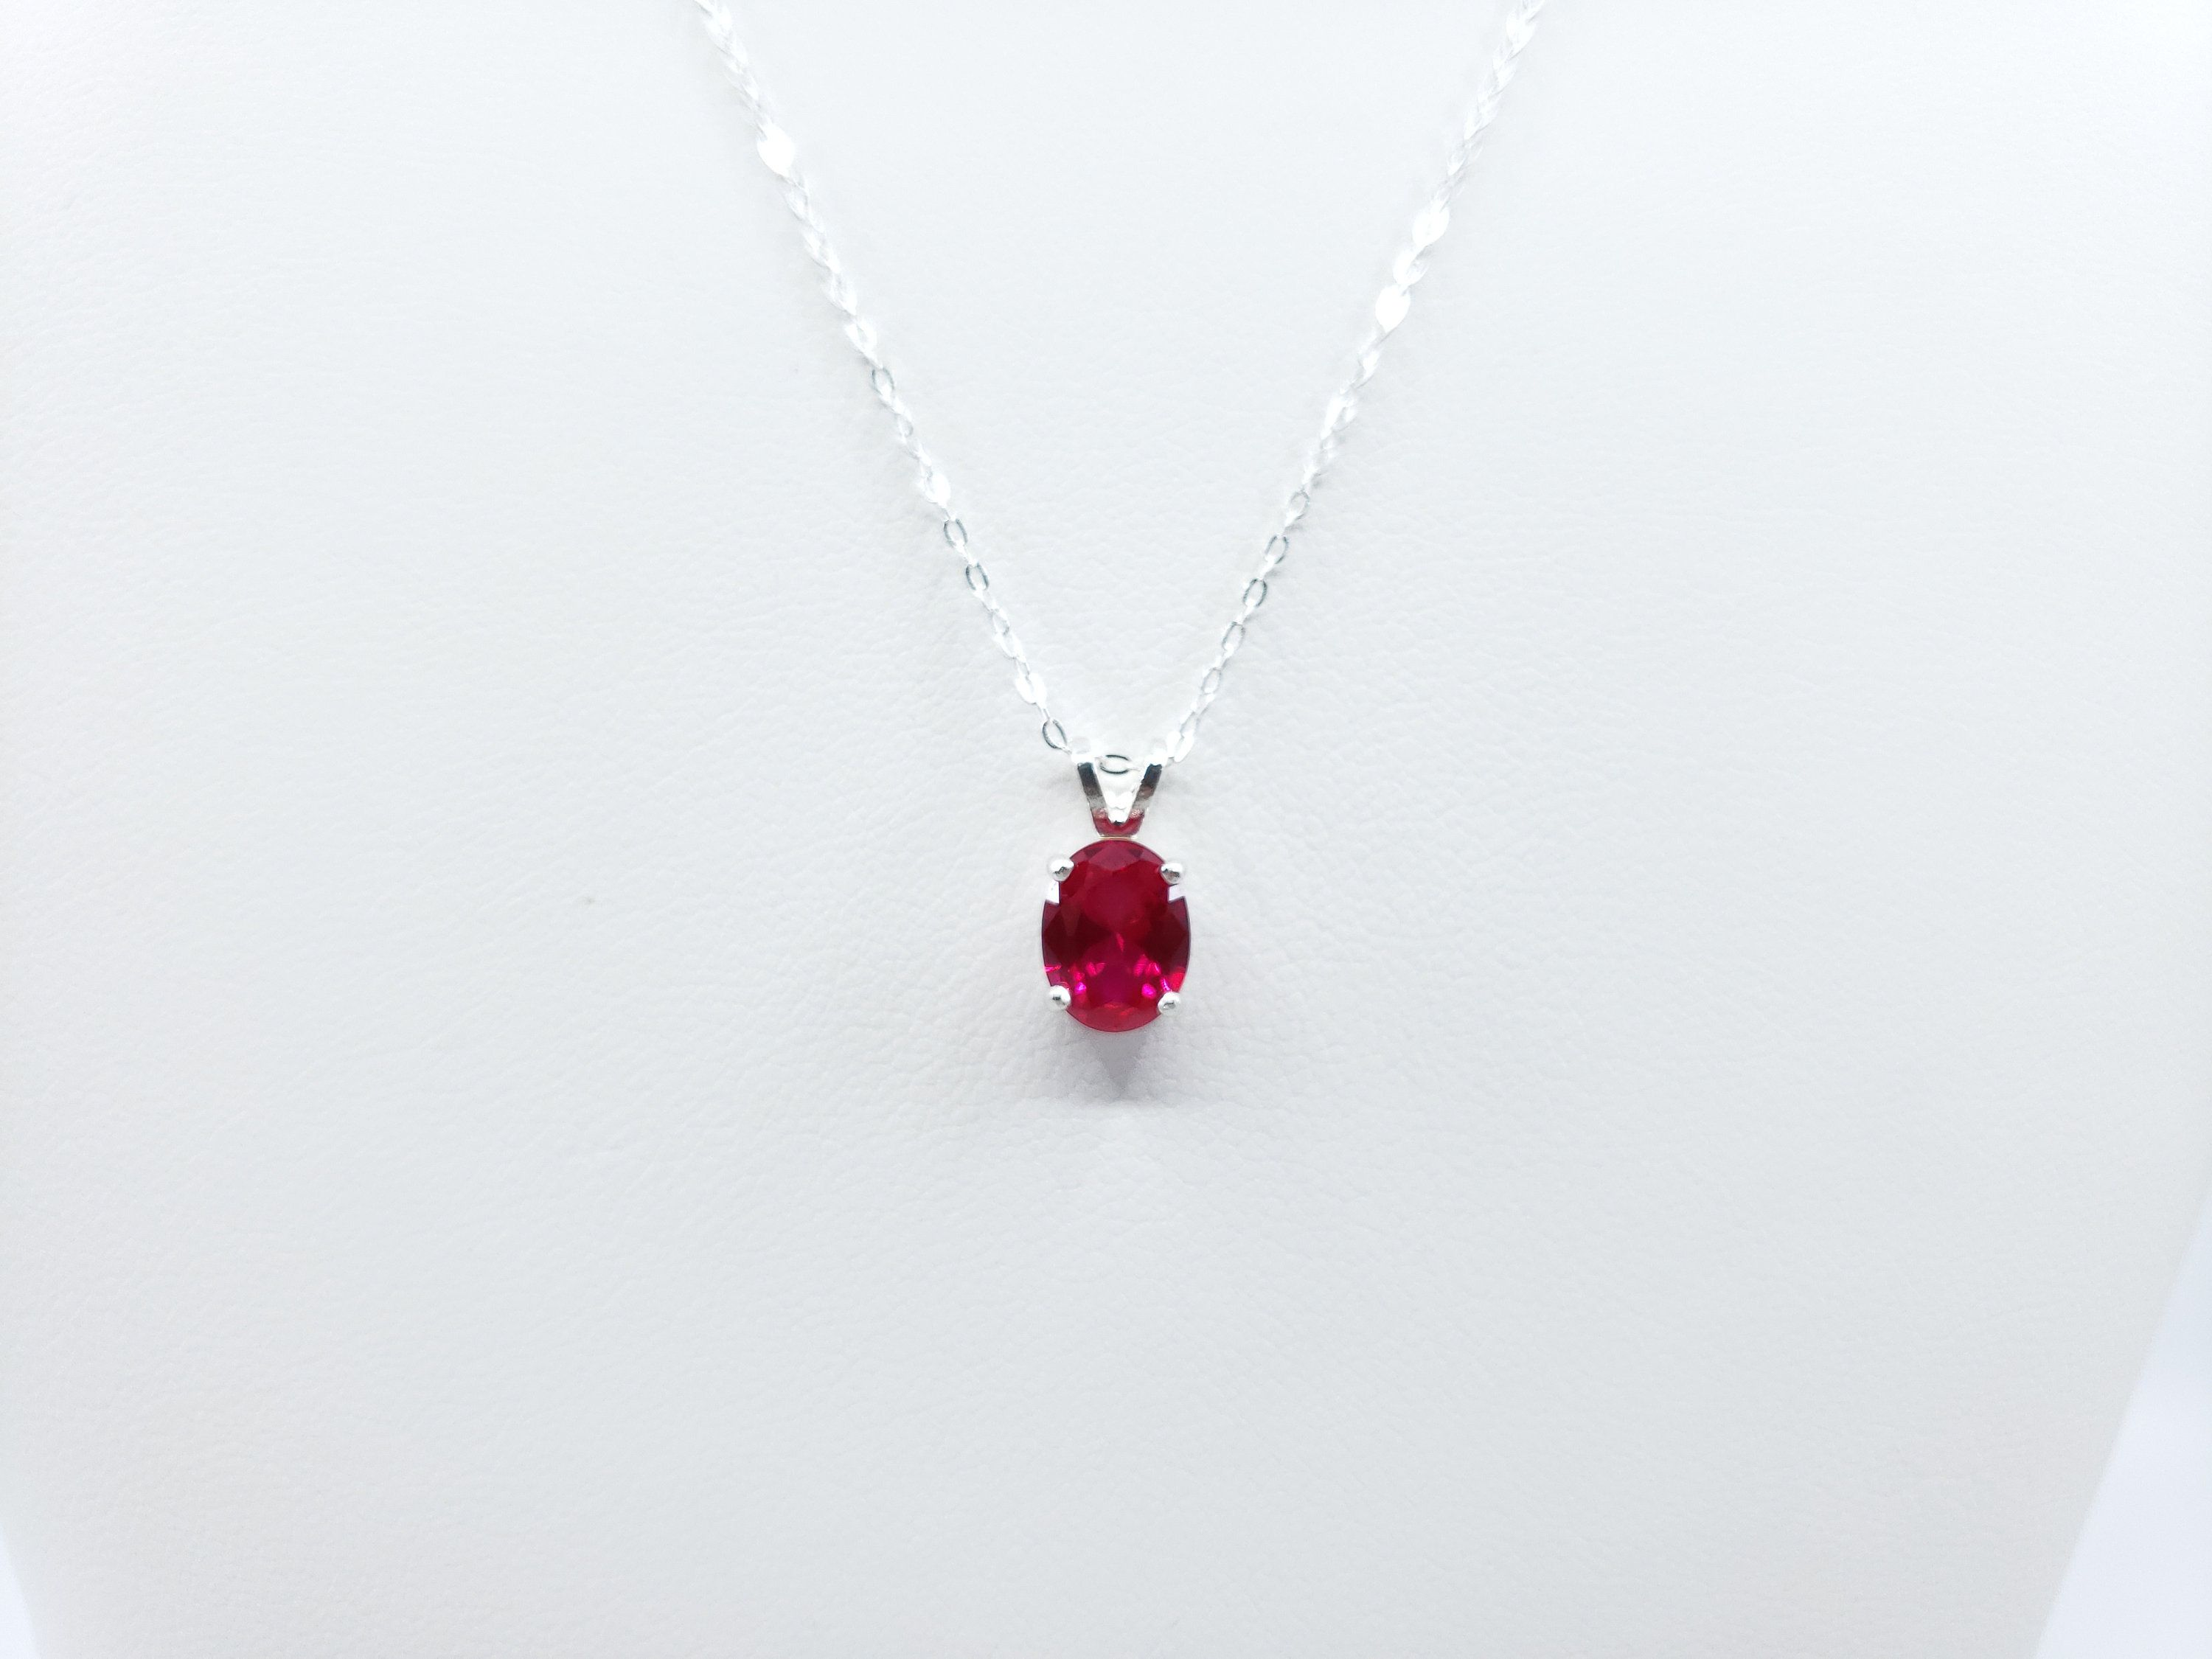 Large Oval Ruby Necklace Sterling Silver July Birthstone Luxury Star Cut 11 CT Red Ruby Pendant